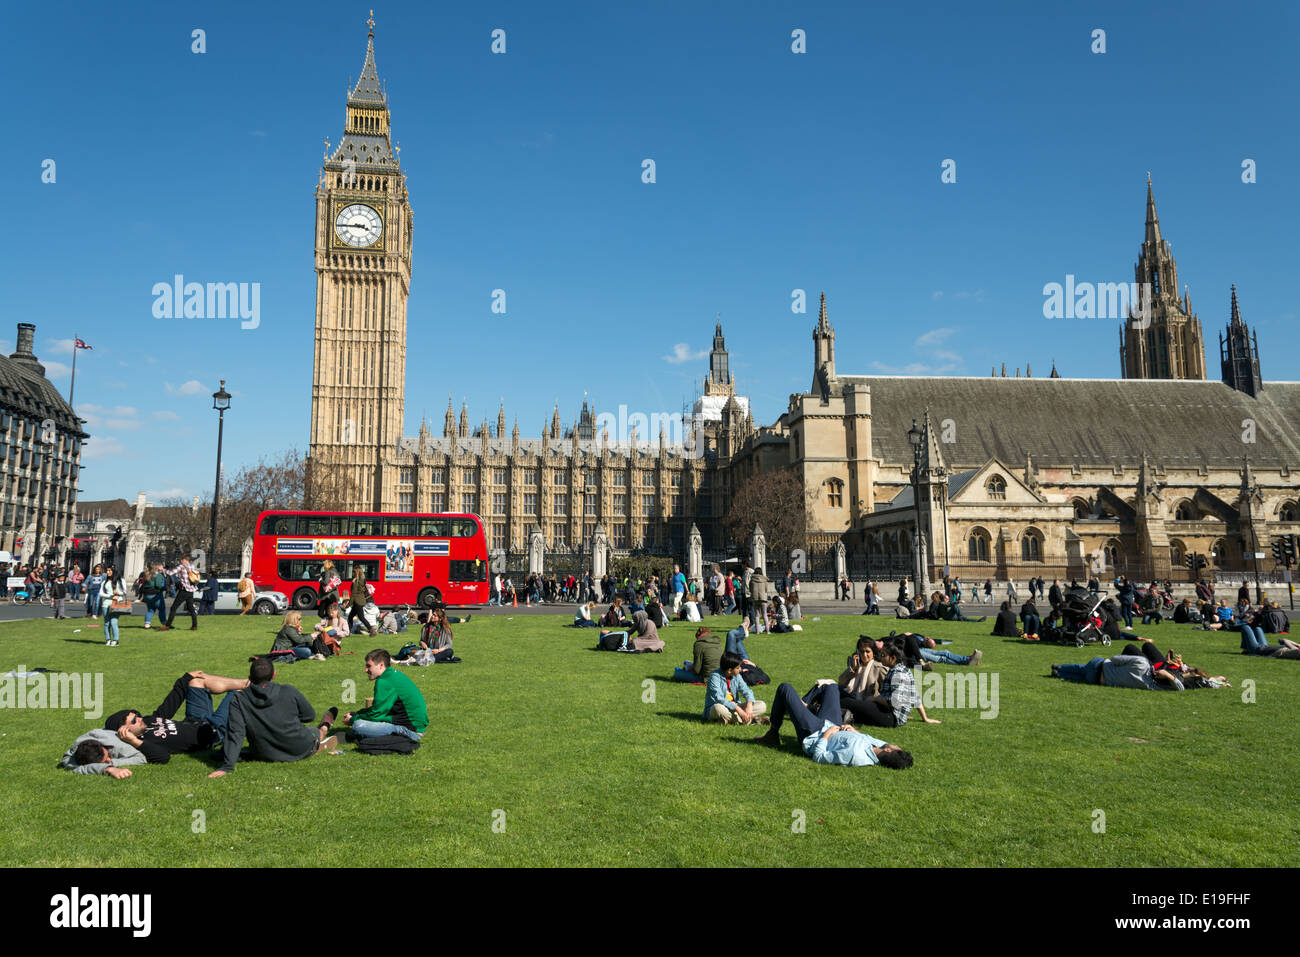 People relaxing in Parliament Square, London, England, UK - Stock Image